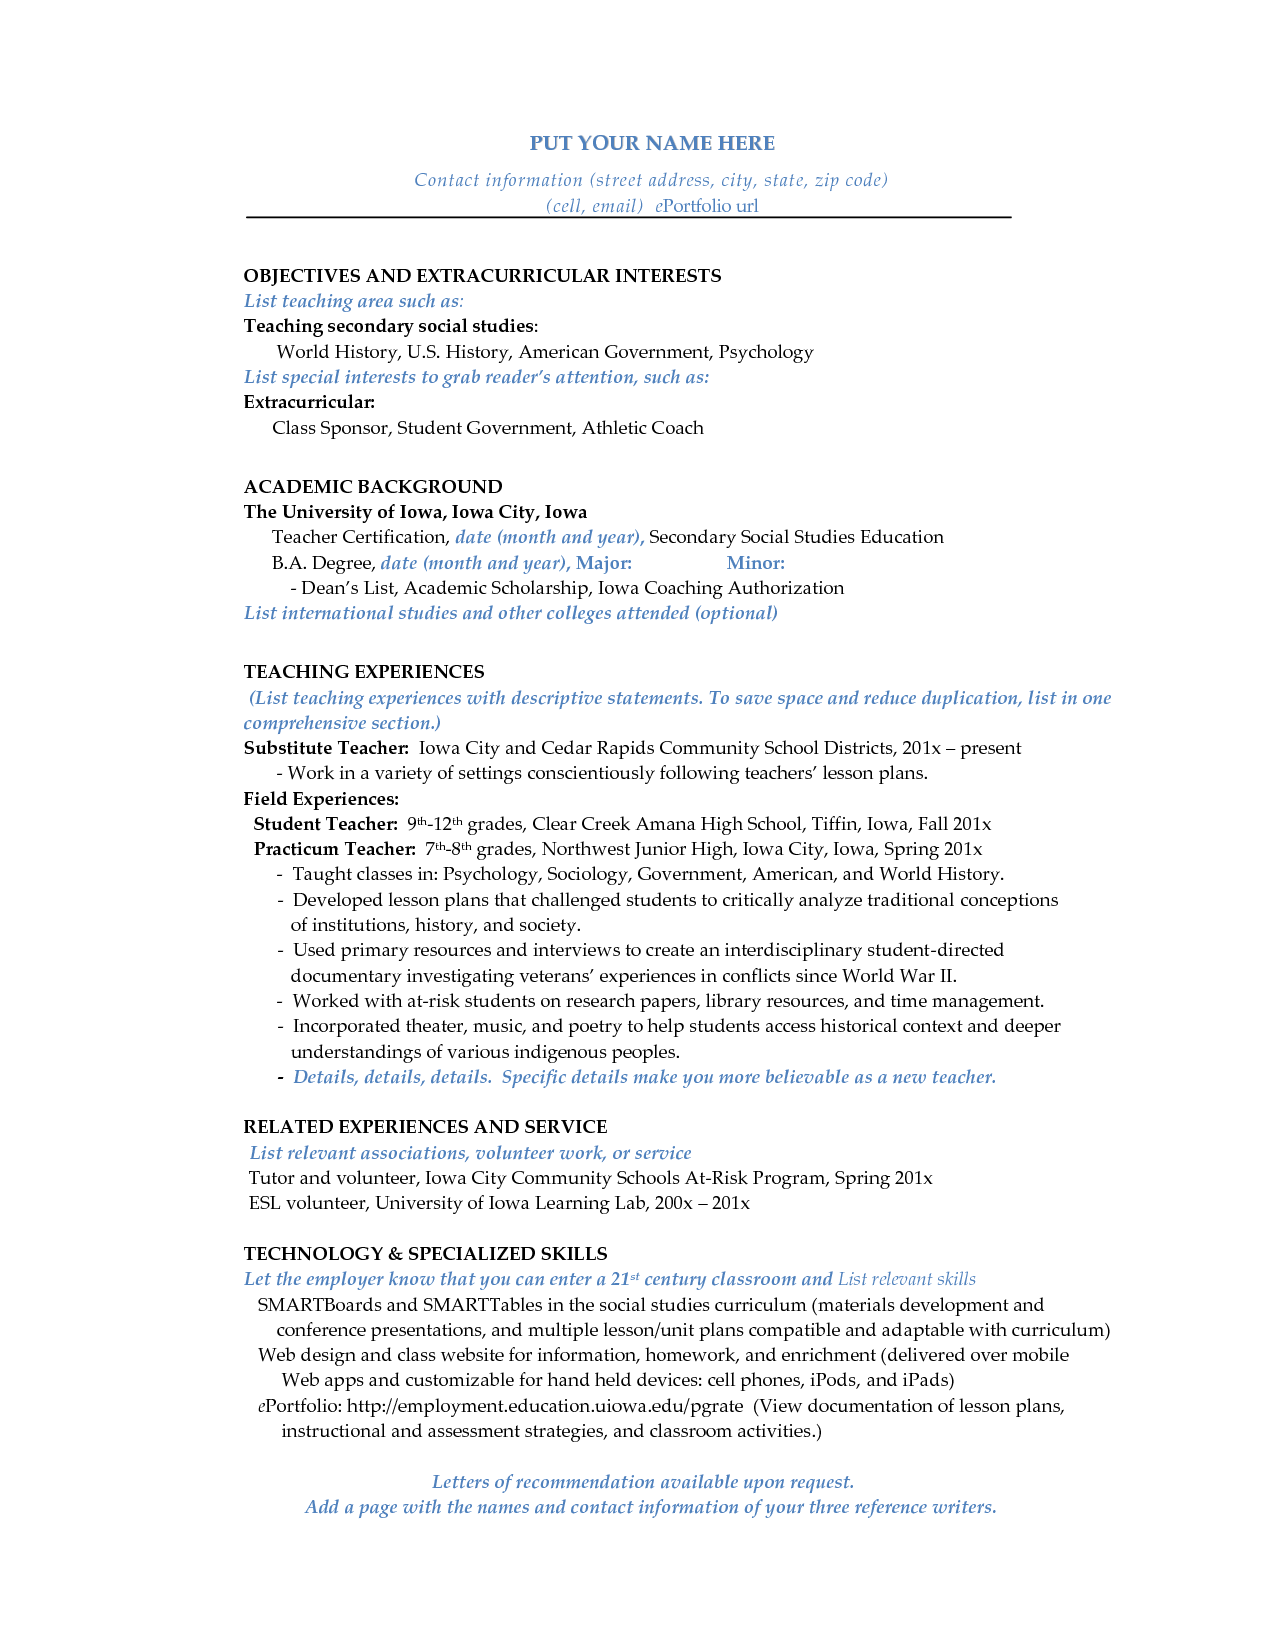 c91b5f94453bd35490c5317ef47d969d Resume Format For Coaching on accomplishments examples, example couselng, helping edit, career objective examples for, line supervisor, objective for head, duties for, words for, good skills have, examples personal corporate,